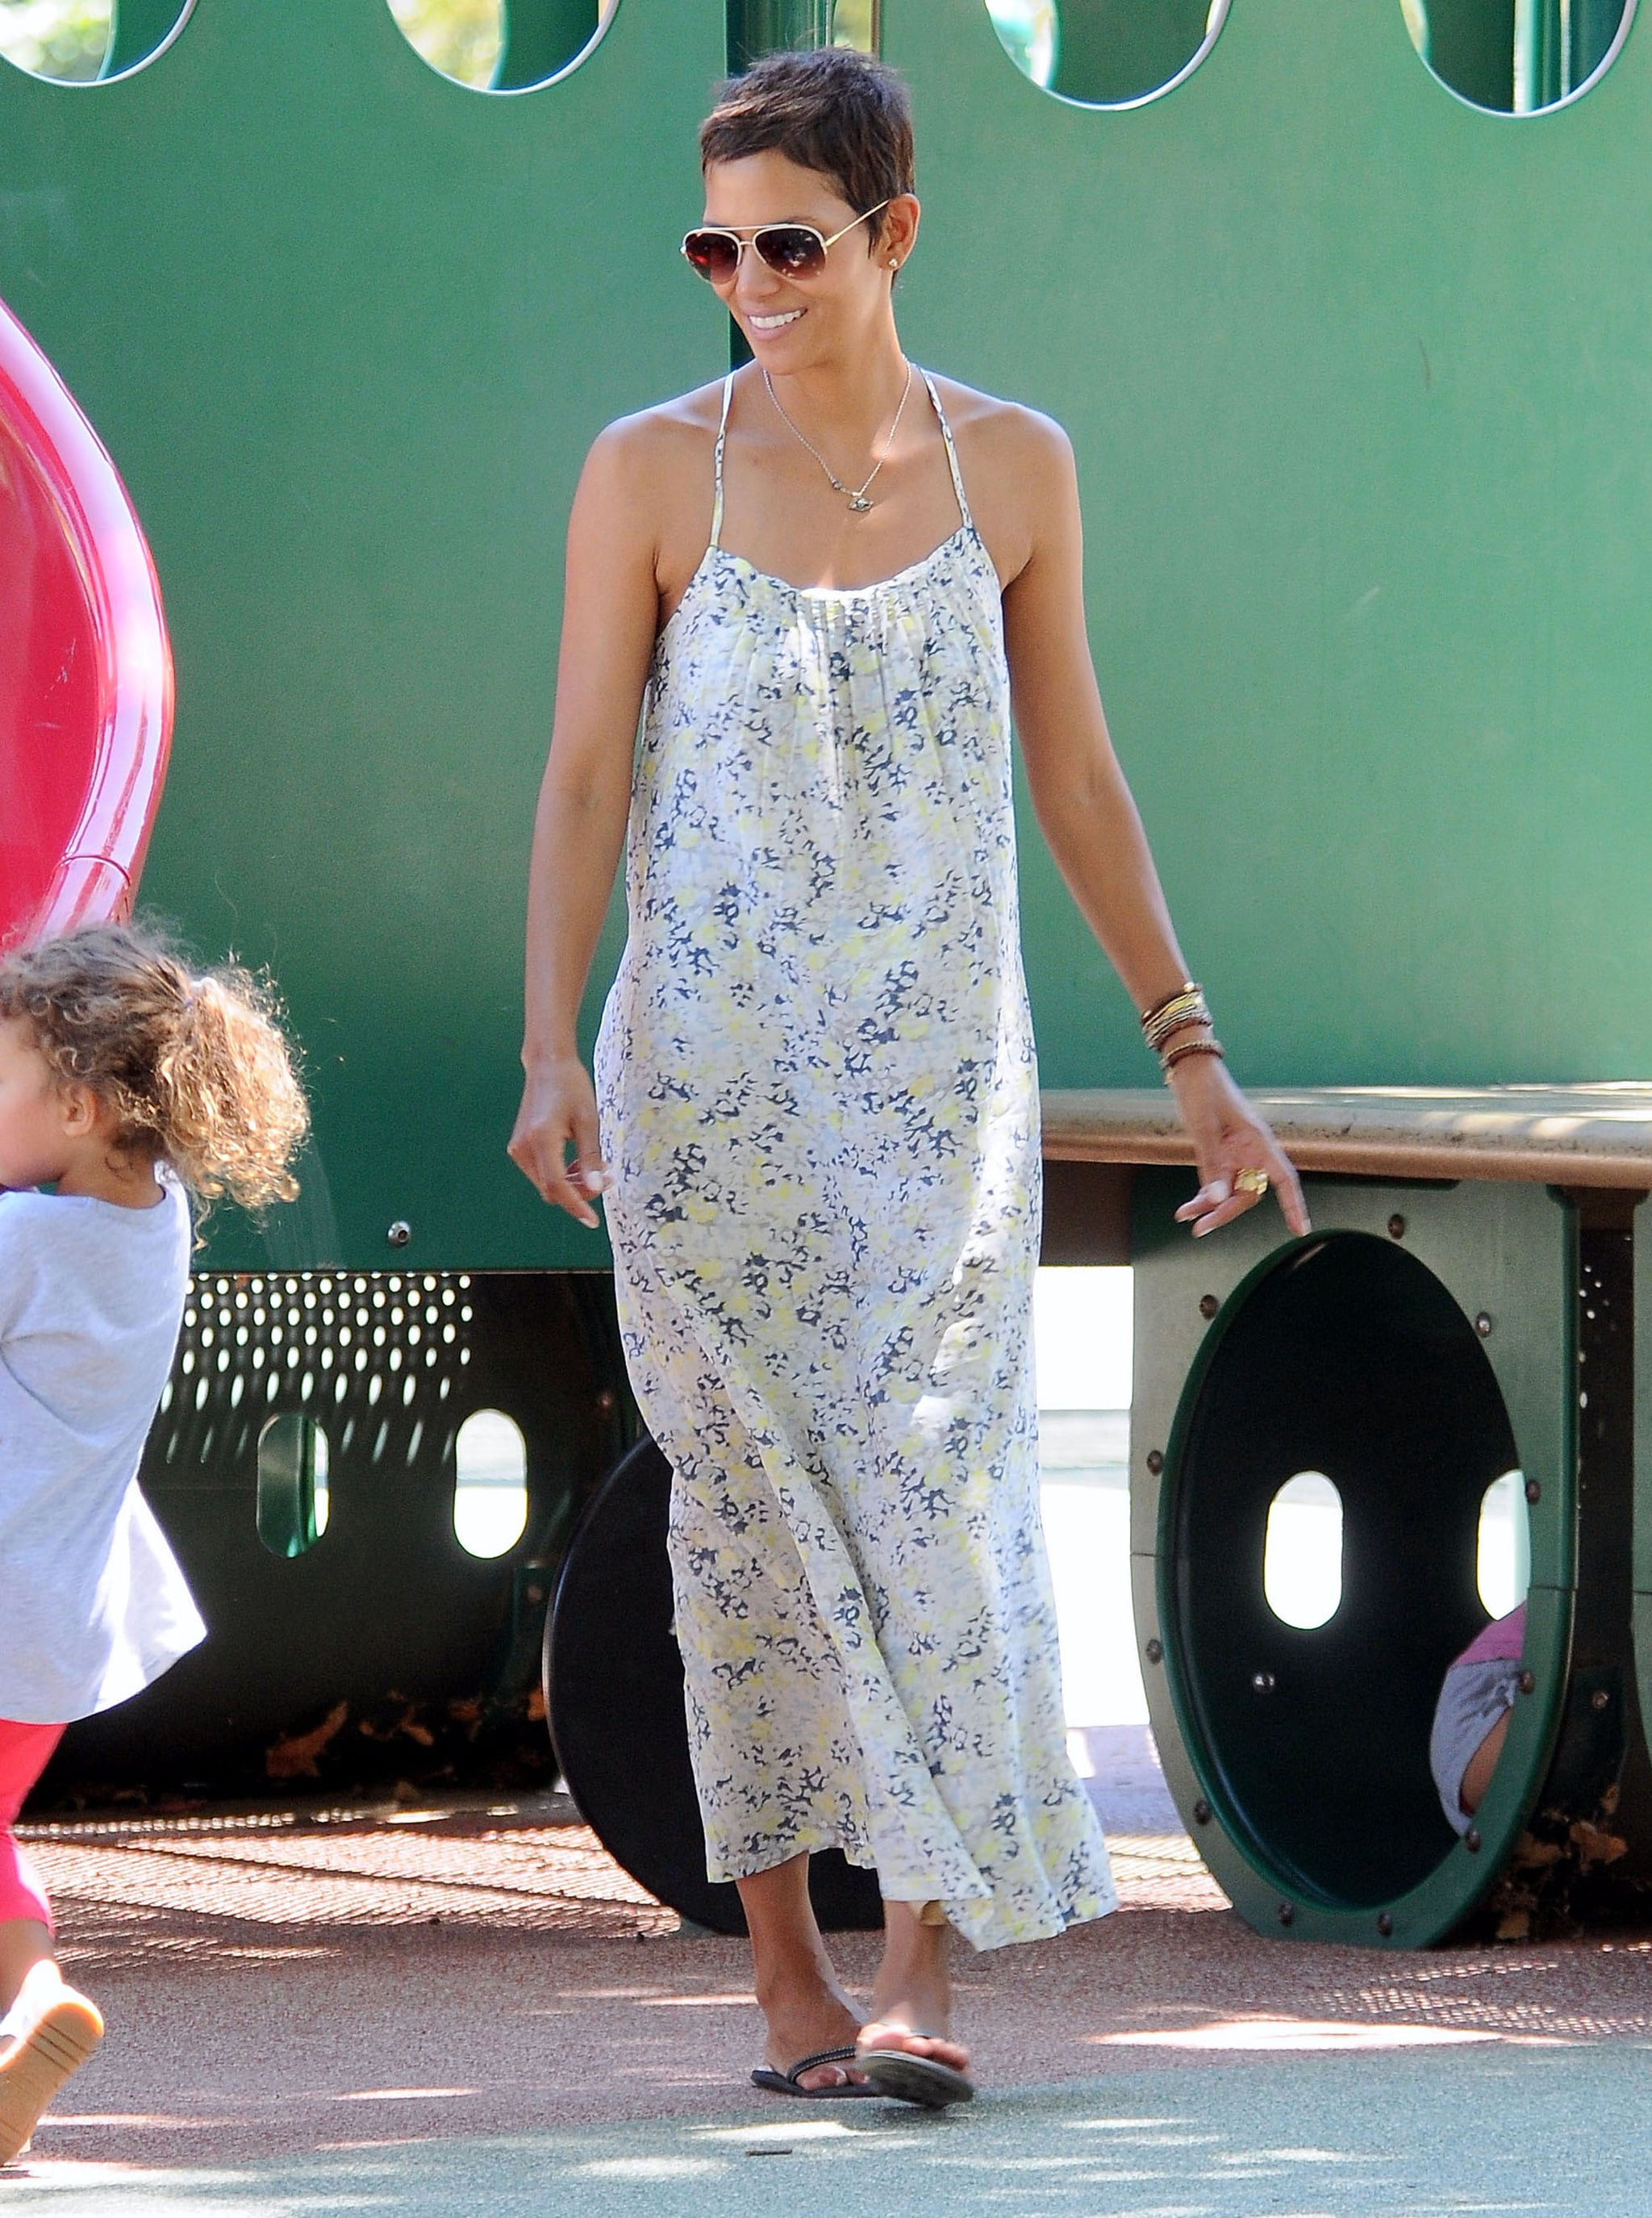 Even though she looks great in body-con silhouettes, she looks even dreamier by day in flowy floral maxi dresses.